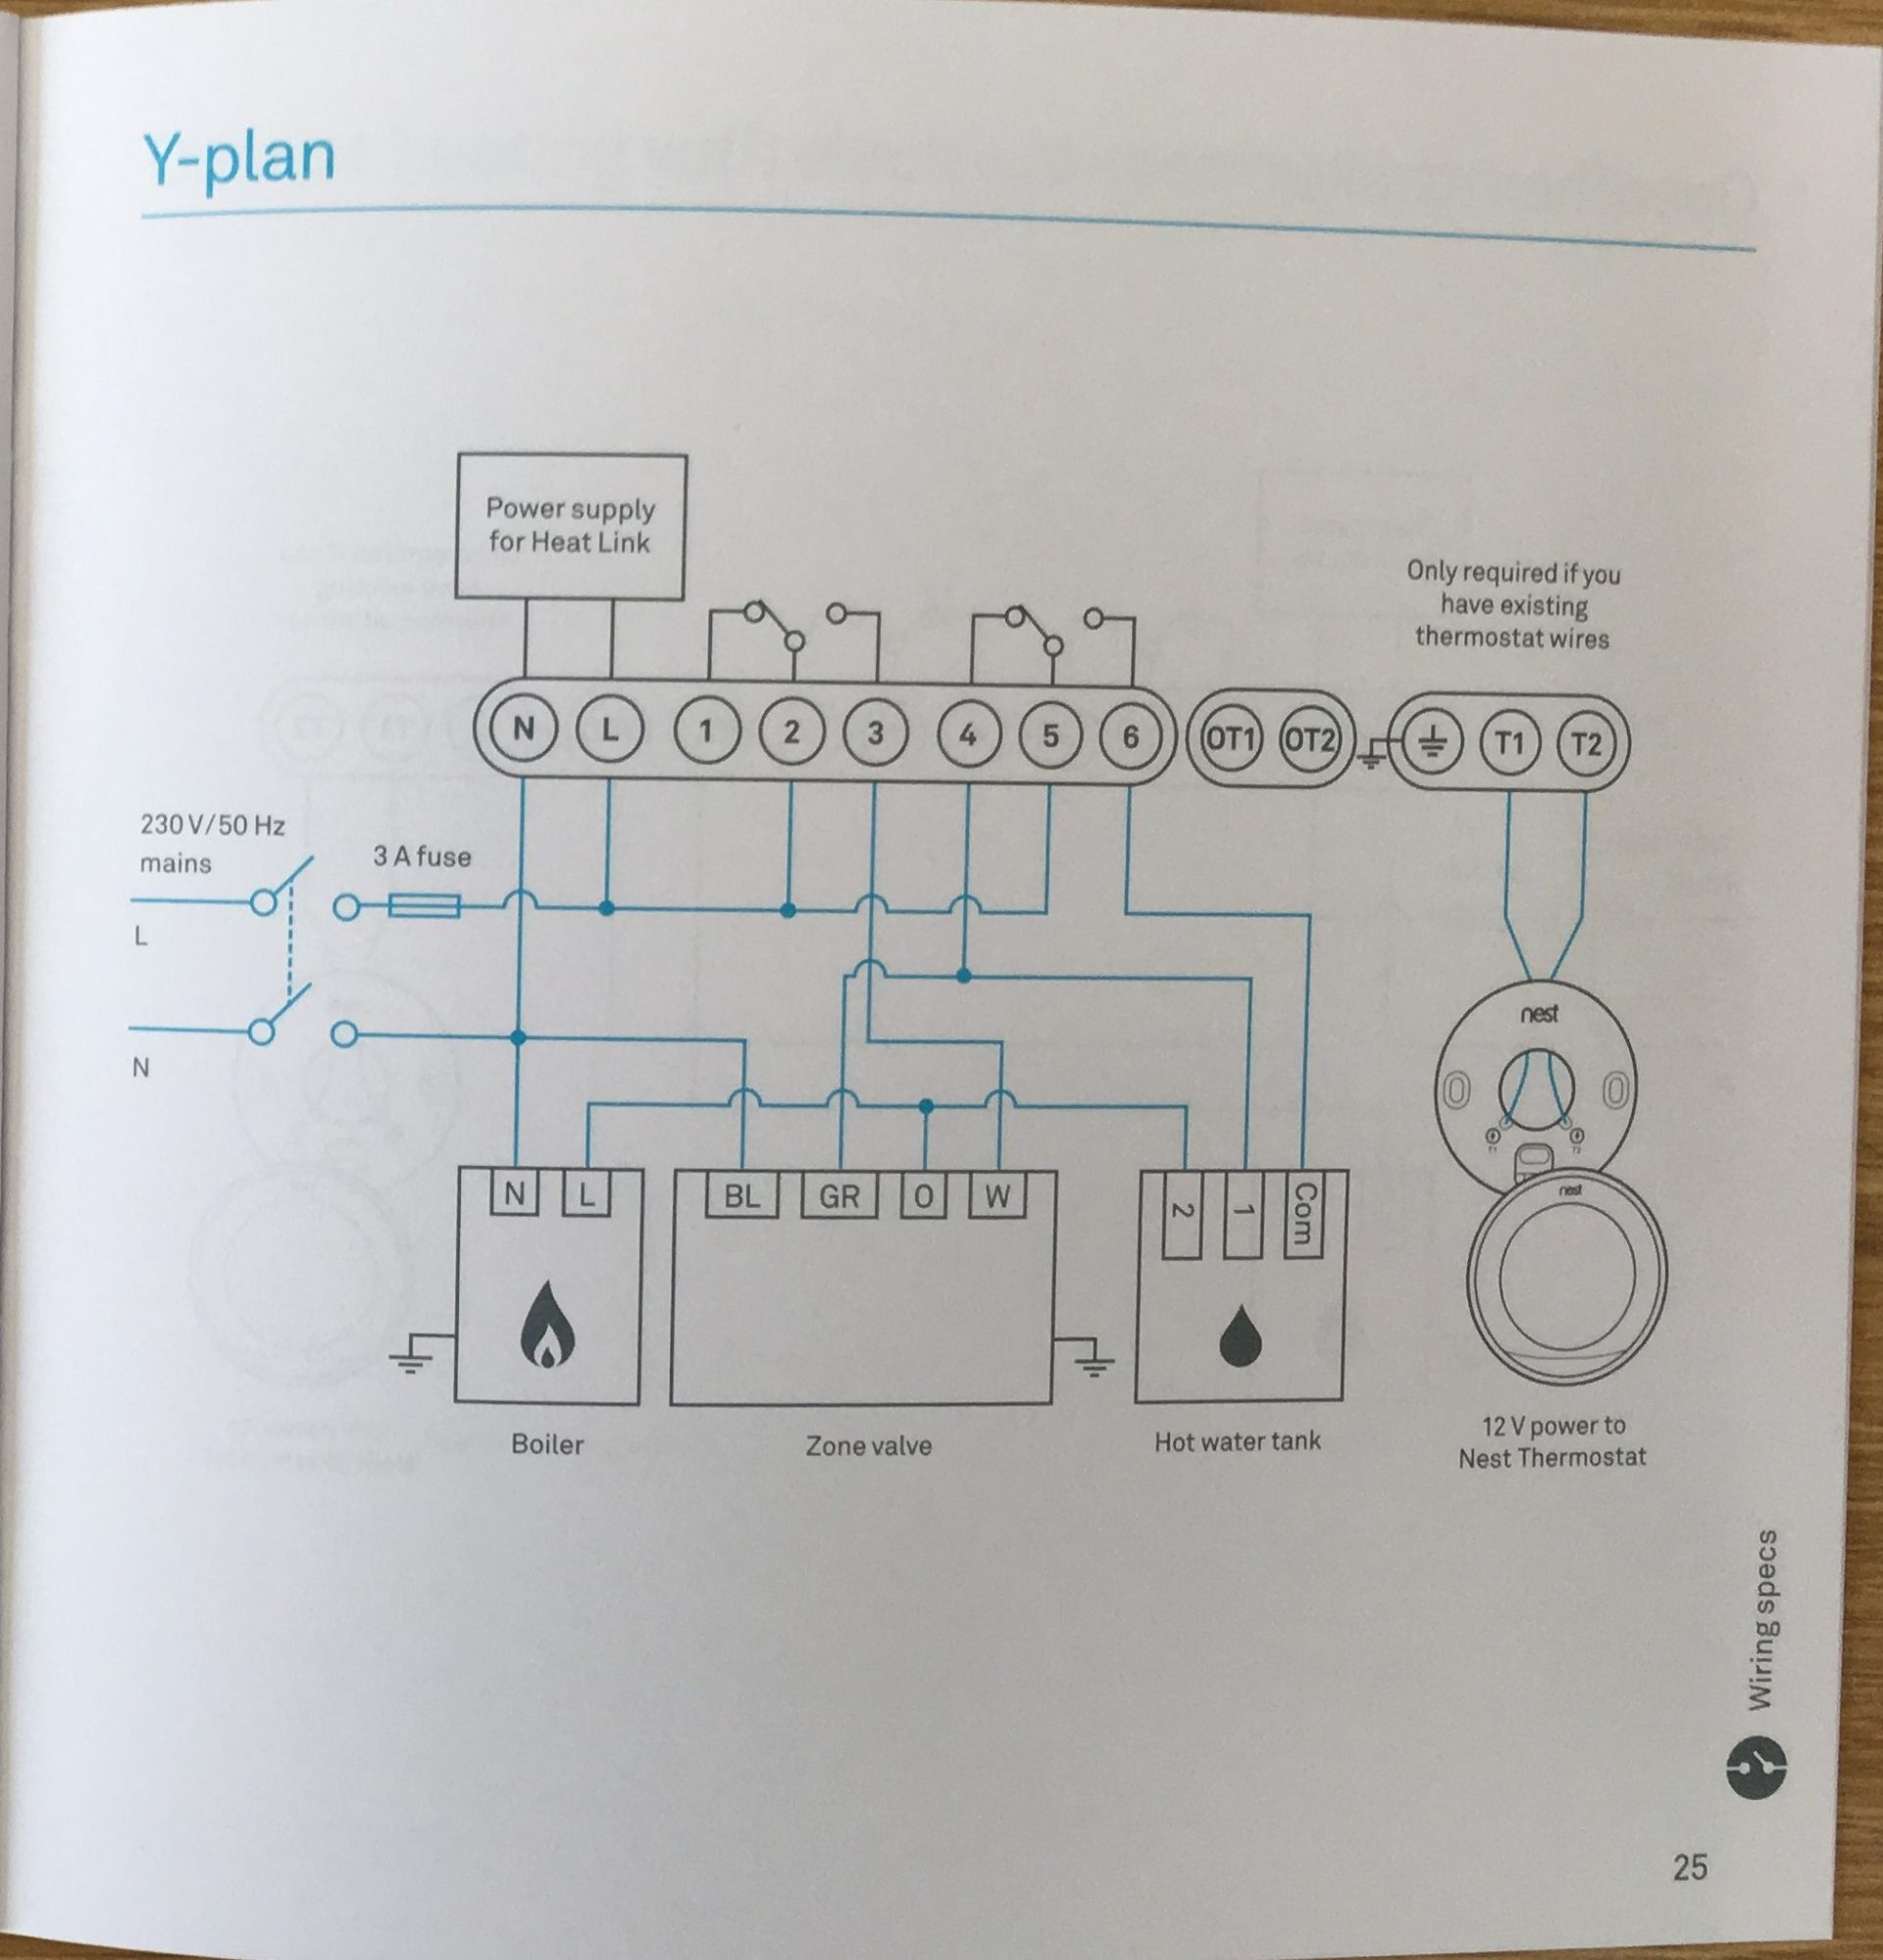 How To Install The Nest Learning Thermostat (3Rd Gen) In A Y-Plan - Nest Works Wiring Diagram